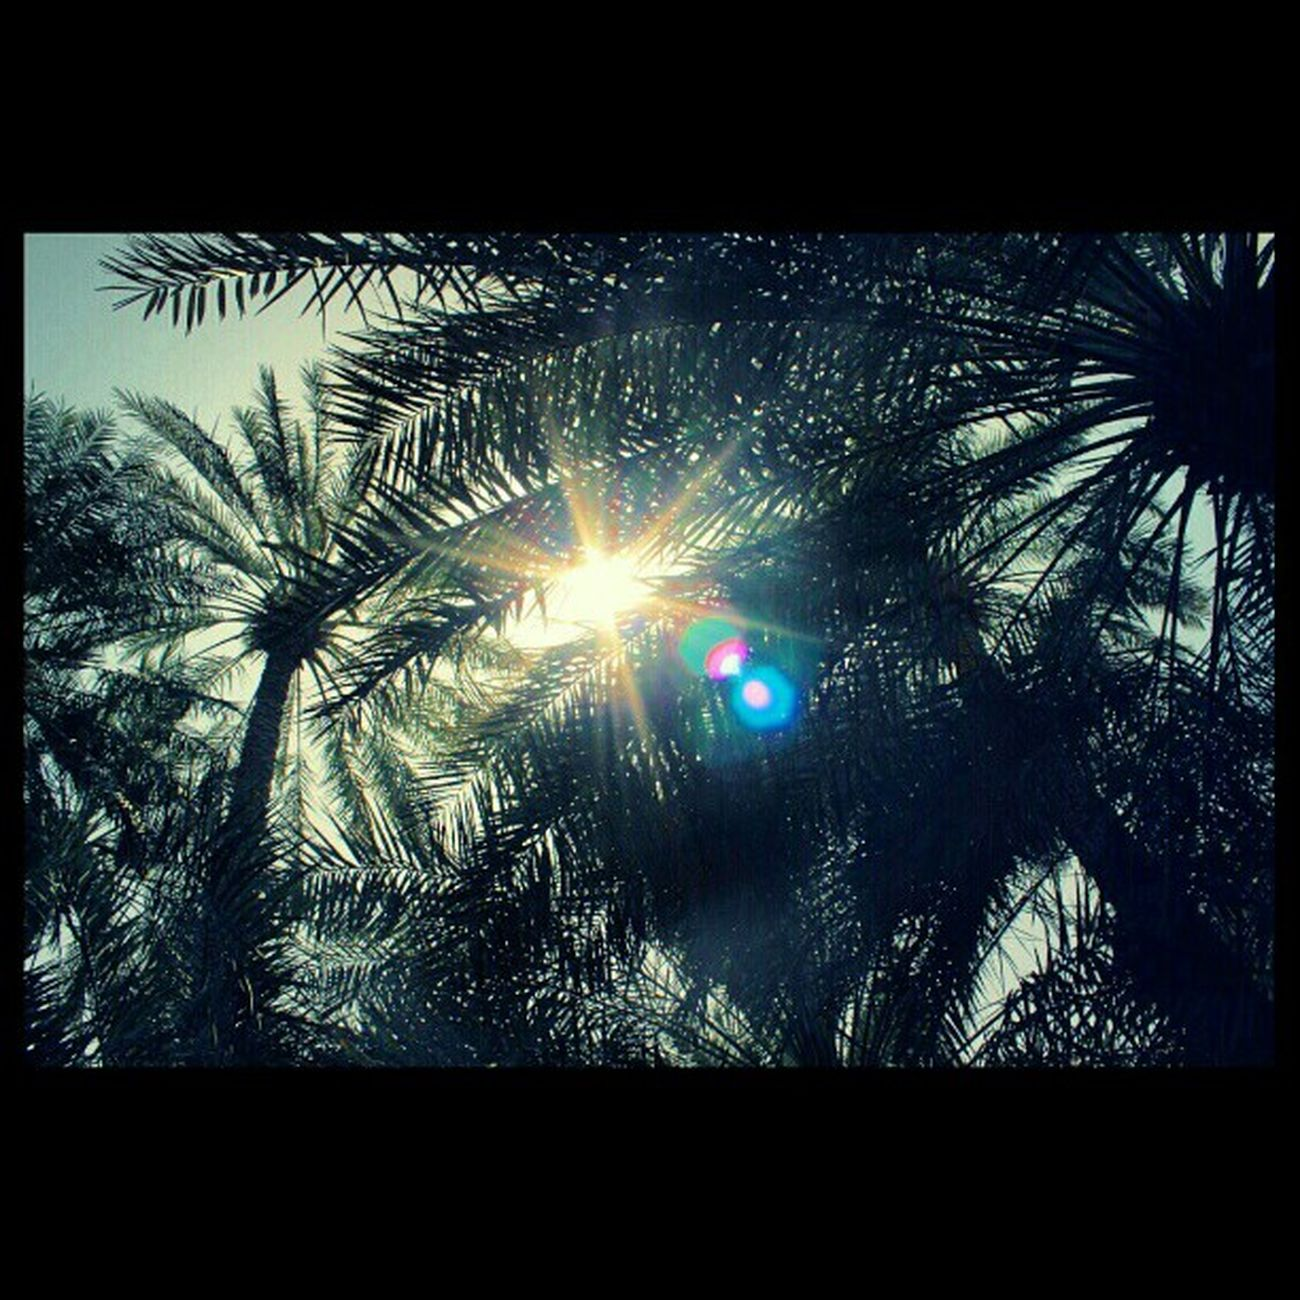 تصويري  نخيل مزرعة Farm Palms Squaready Canond6000 Canon